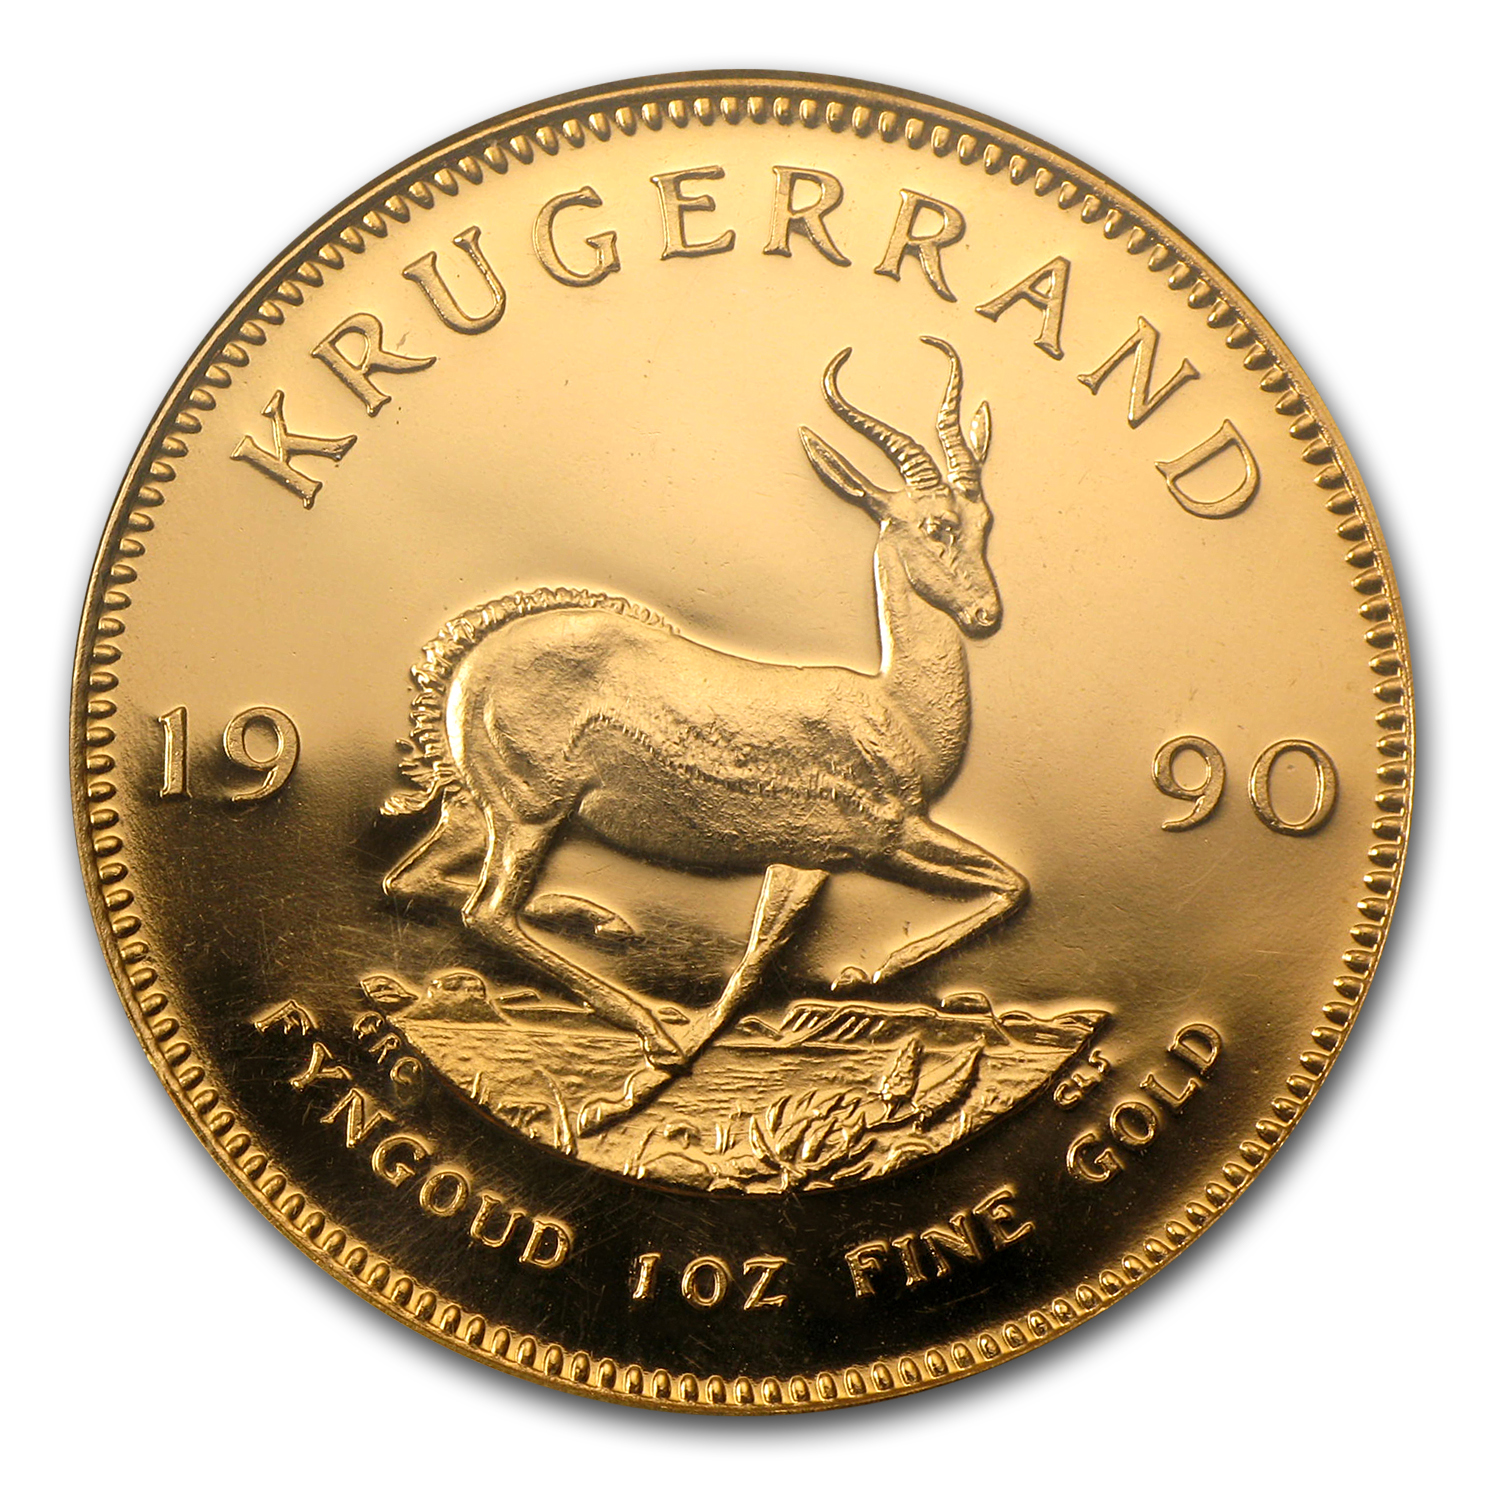 1990 1 oz Gold South African Krugerrand (Proof)